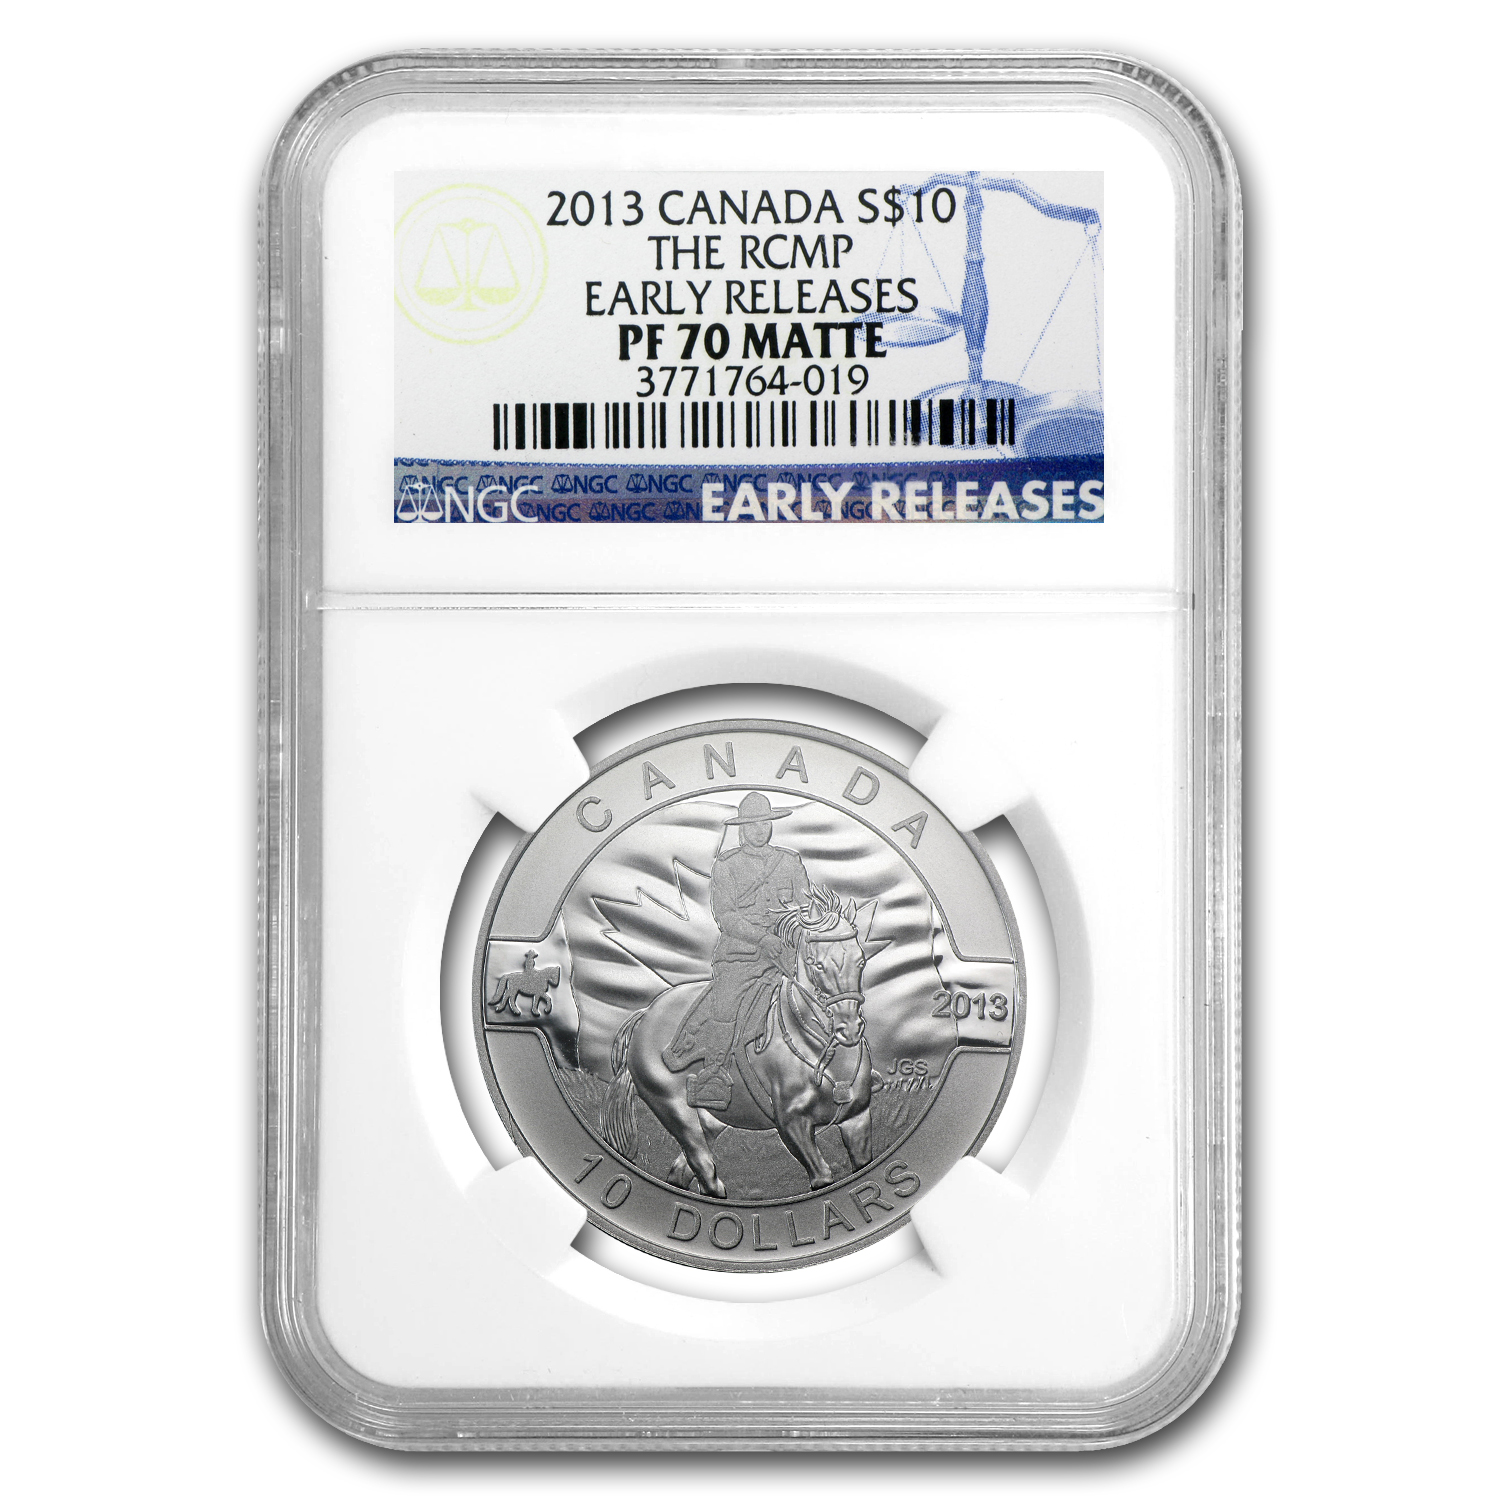 2013 1/2 oz Silver Canadian $10 RCMP PF-70 MATTE NGC